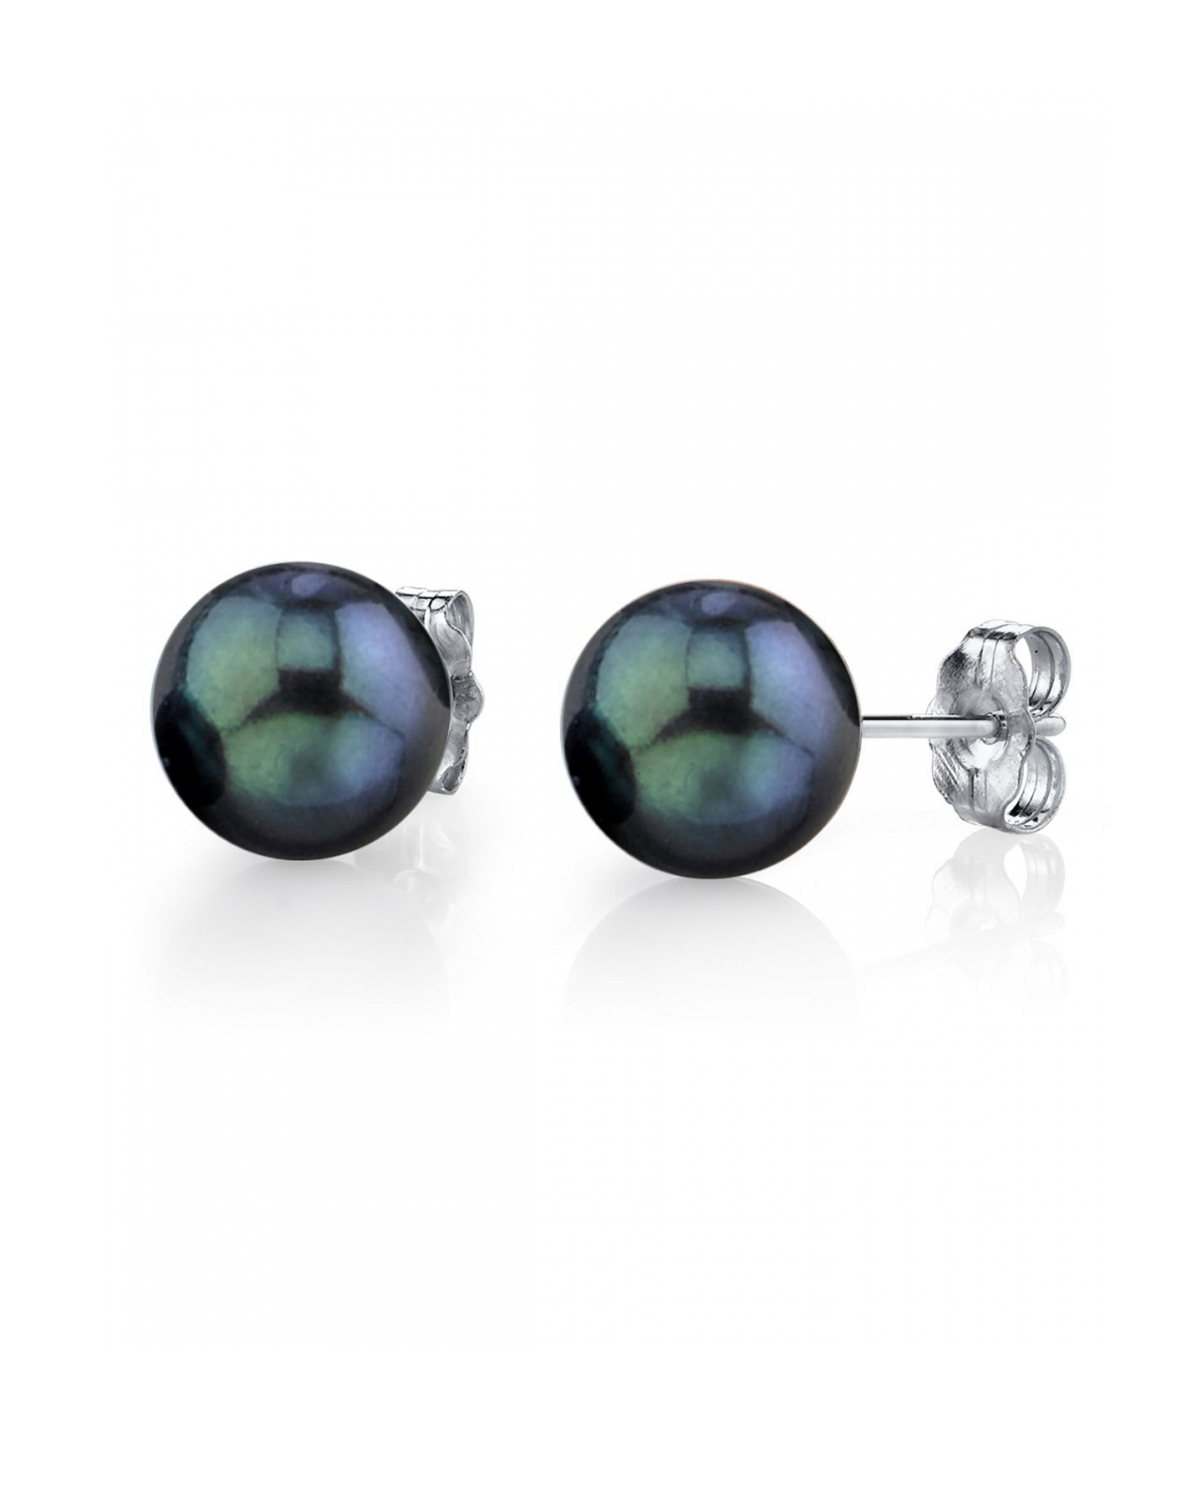 8.5-9.0mm Black Akoya Pearl Stud Earrings